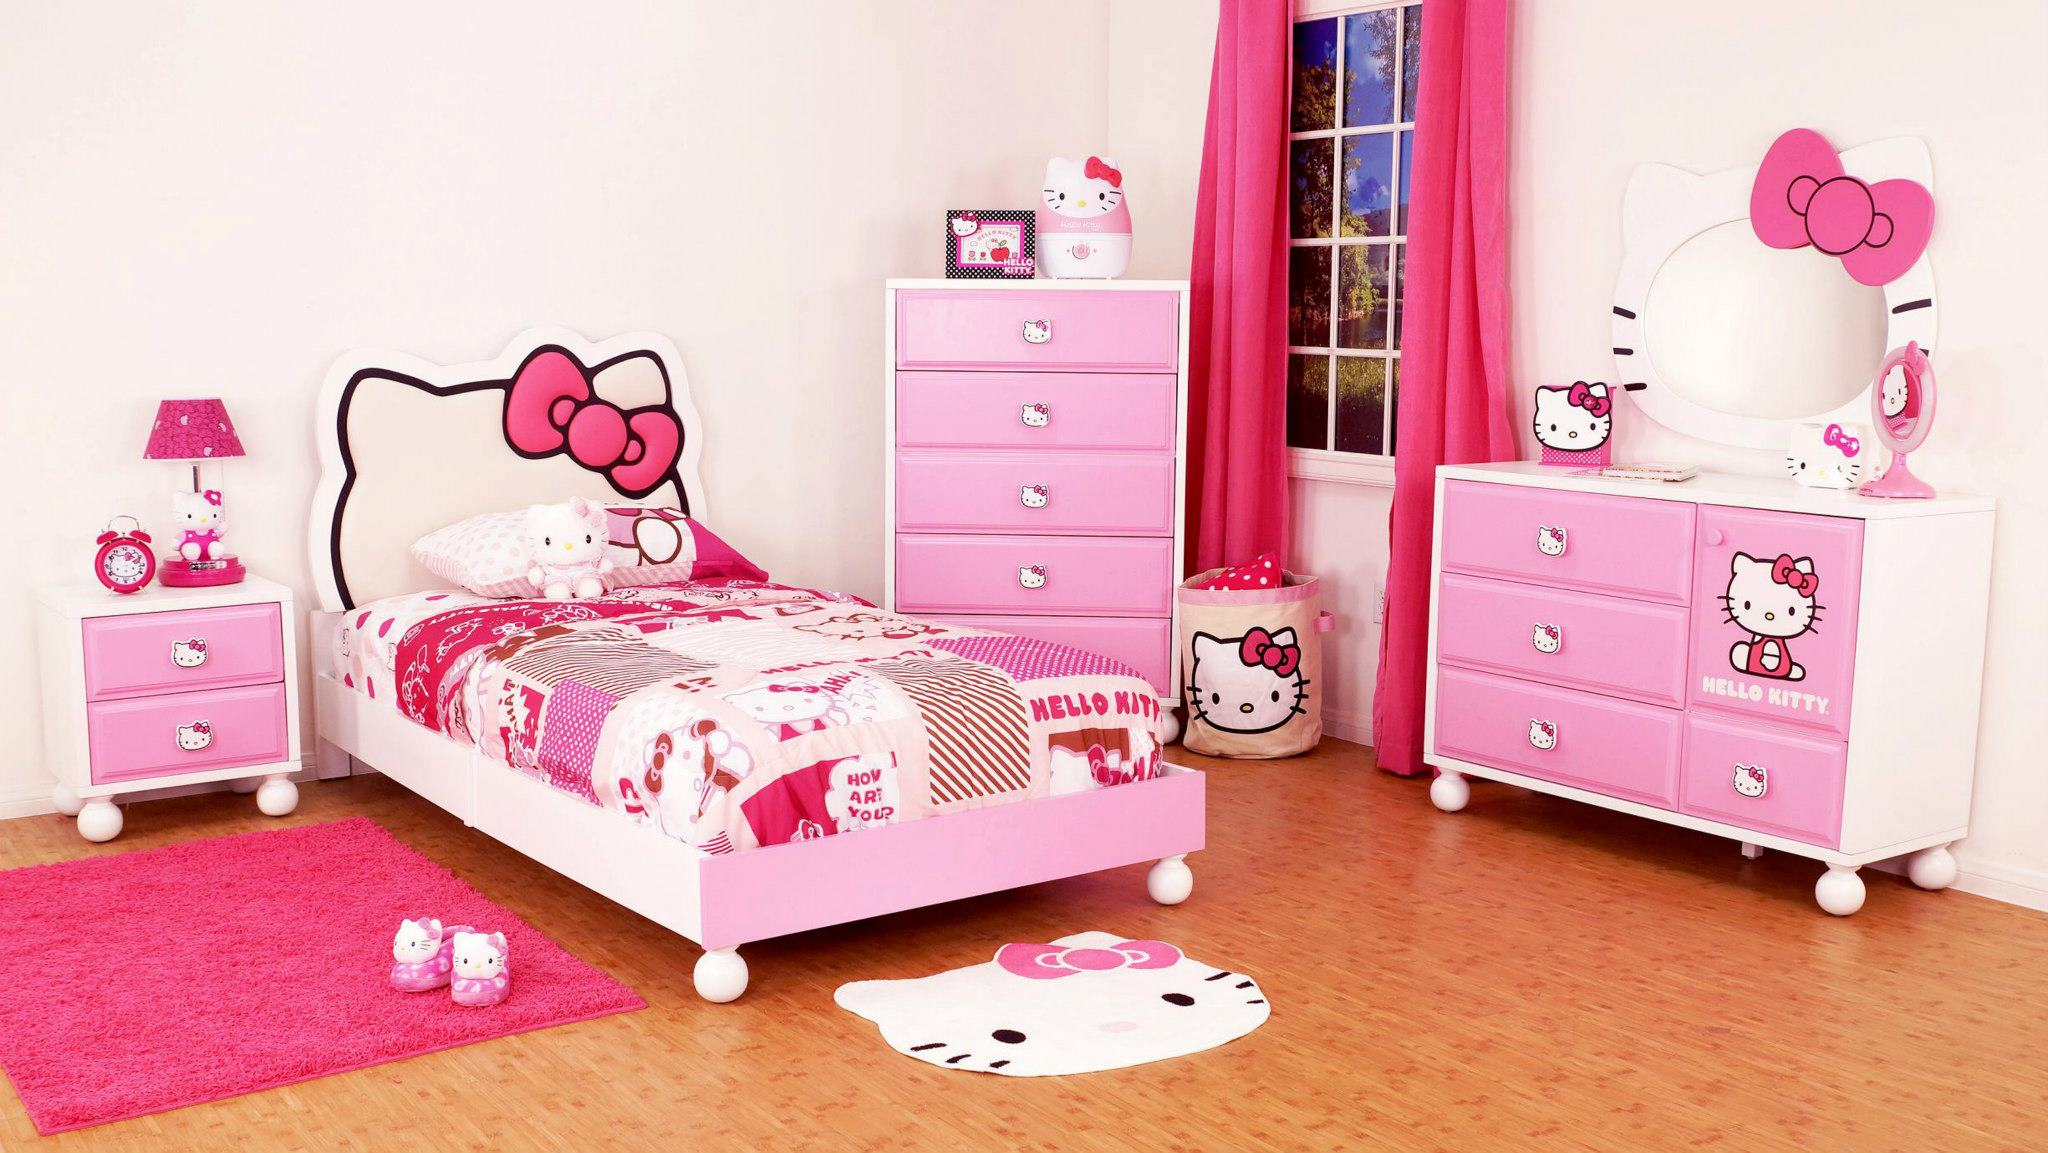 Hello-Kitty-Theme-kids-bedroom-interior-design